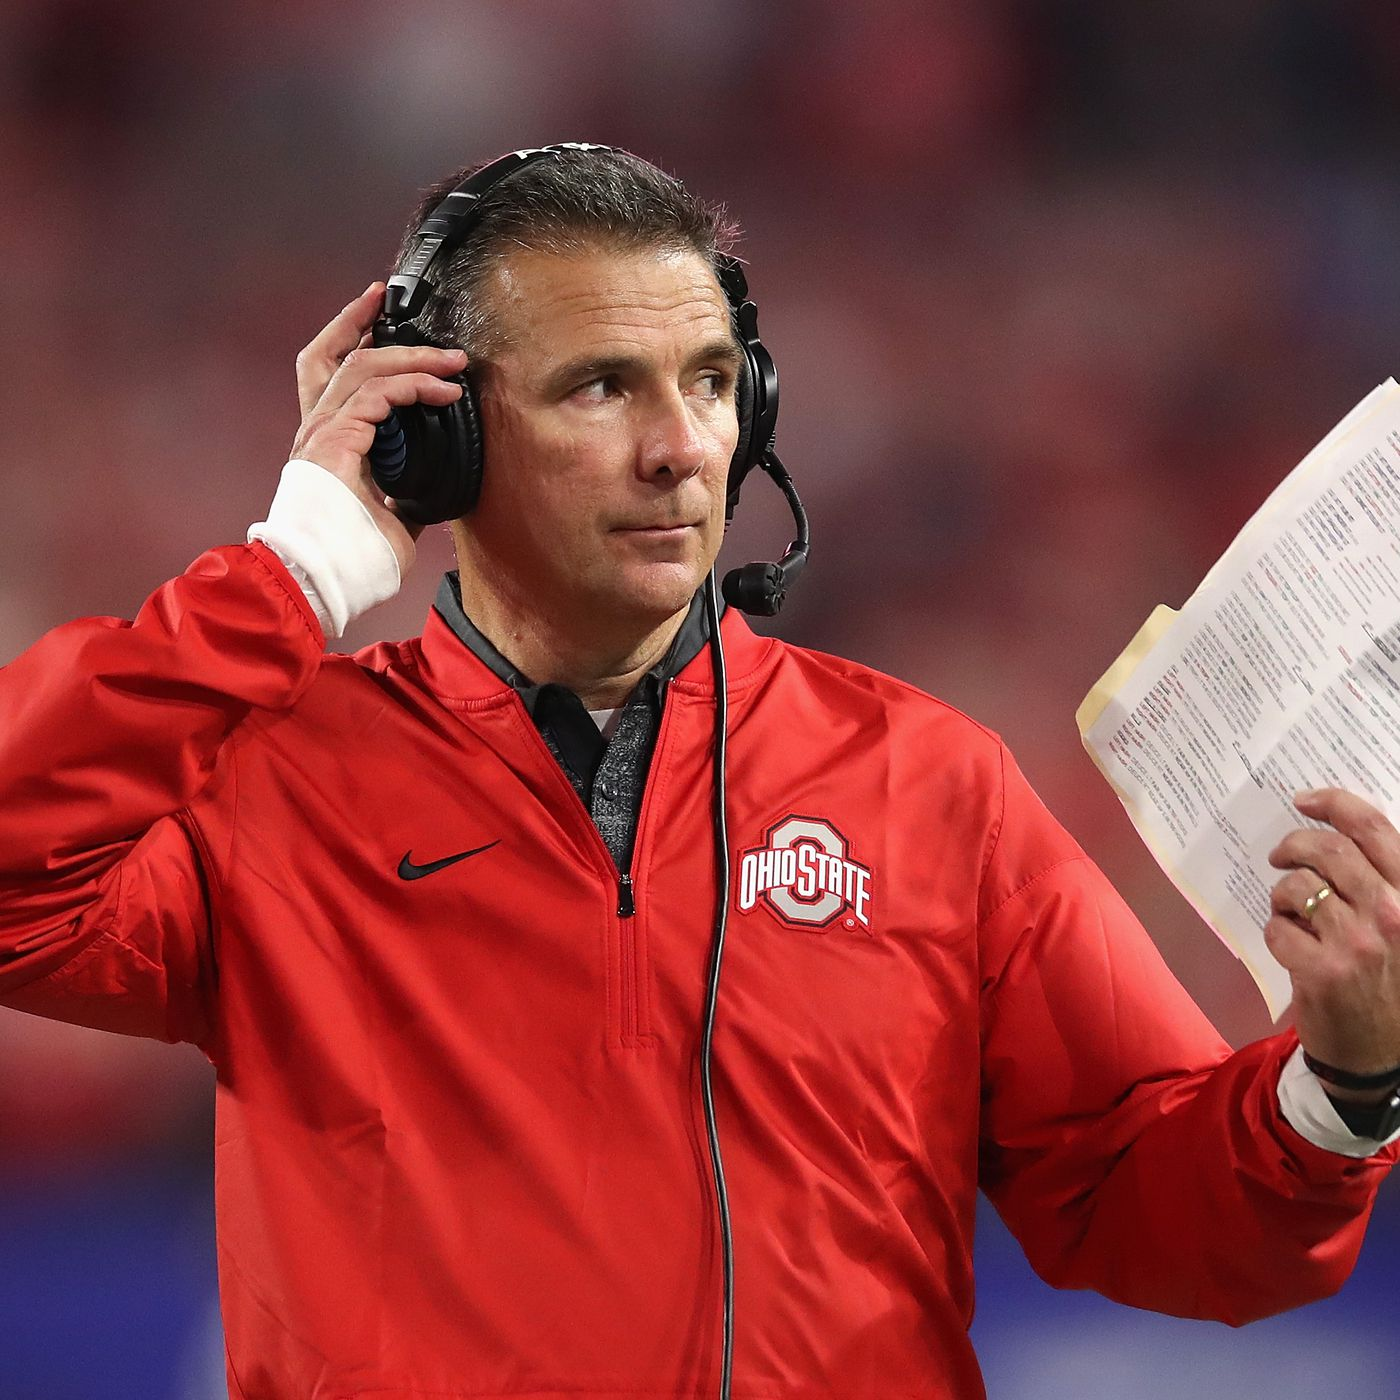 Ohio State turned off-the-field internships into a